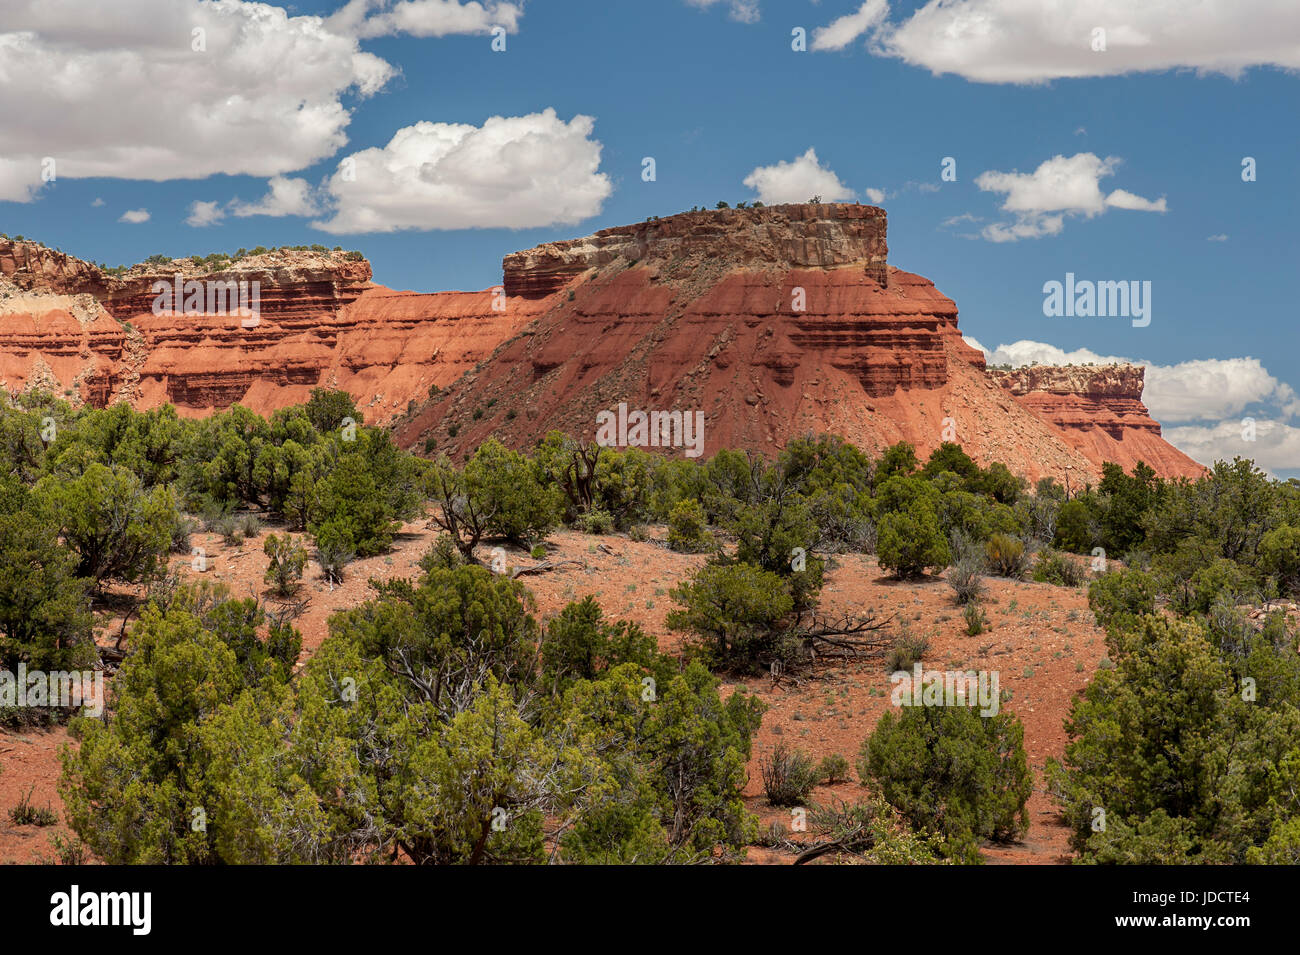 One of the views from the Burr Trail Road in the Circle Cliffs area of the Grand Staircase-Escalante National Monument. Stock Photo